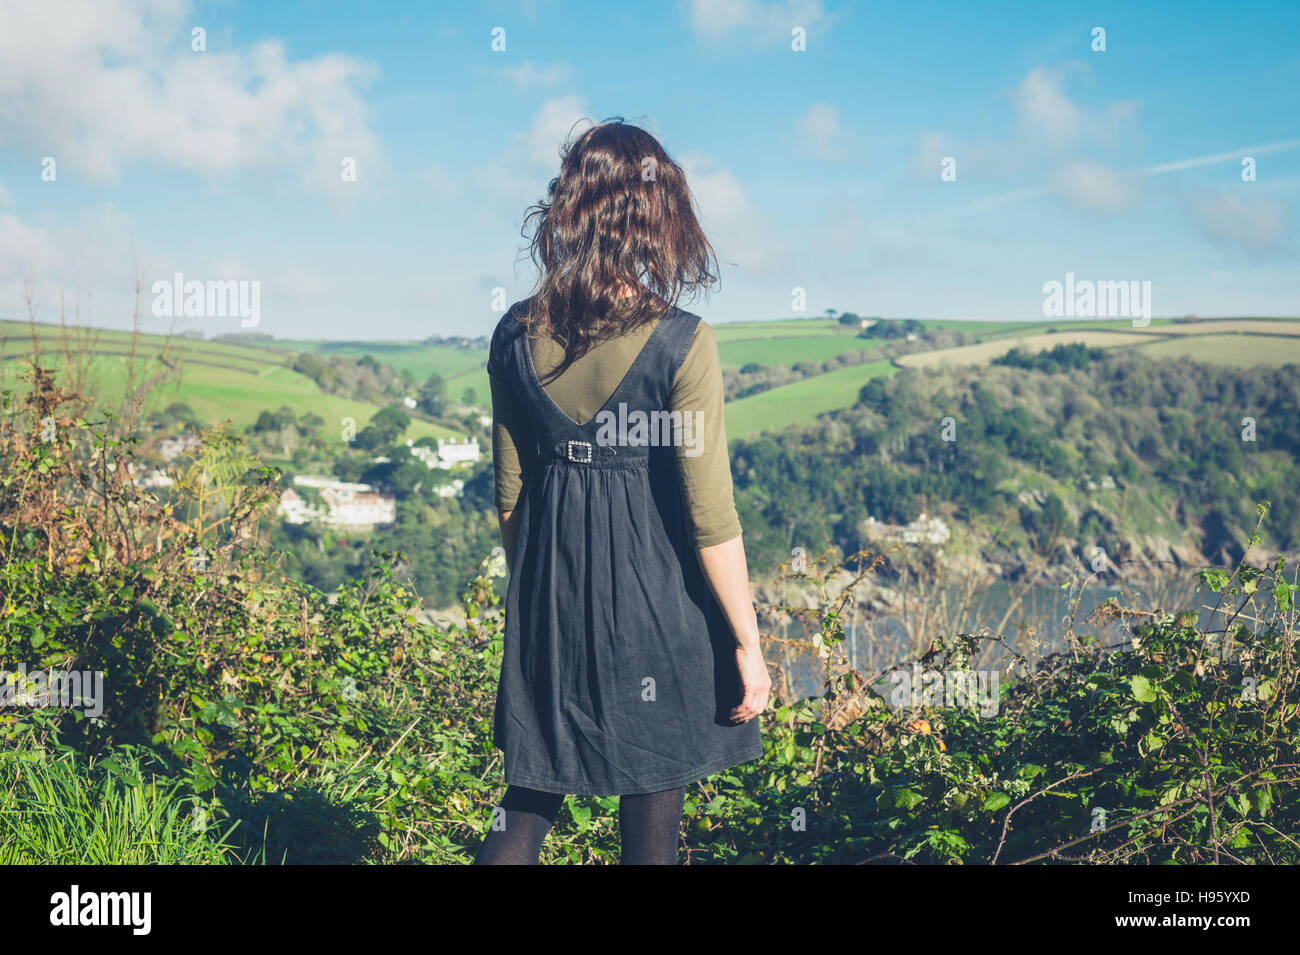 A young woman is standing on a hilltop and is admiring the countryside - Stock Image